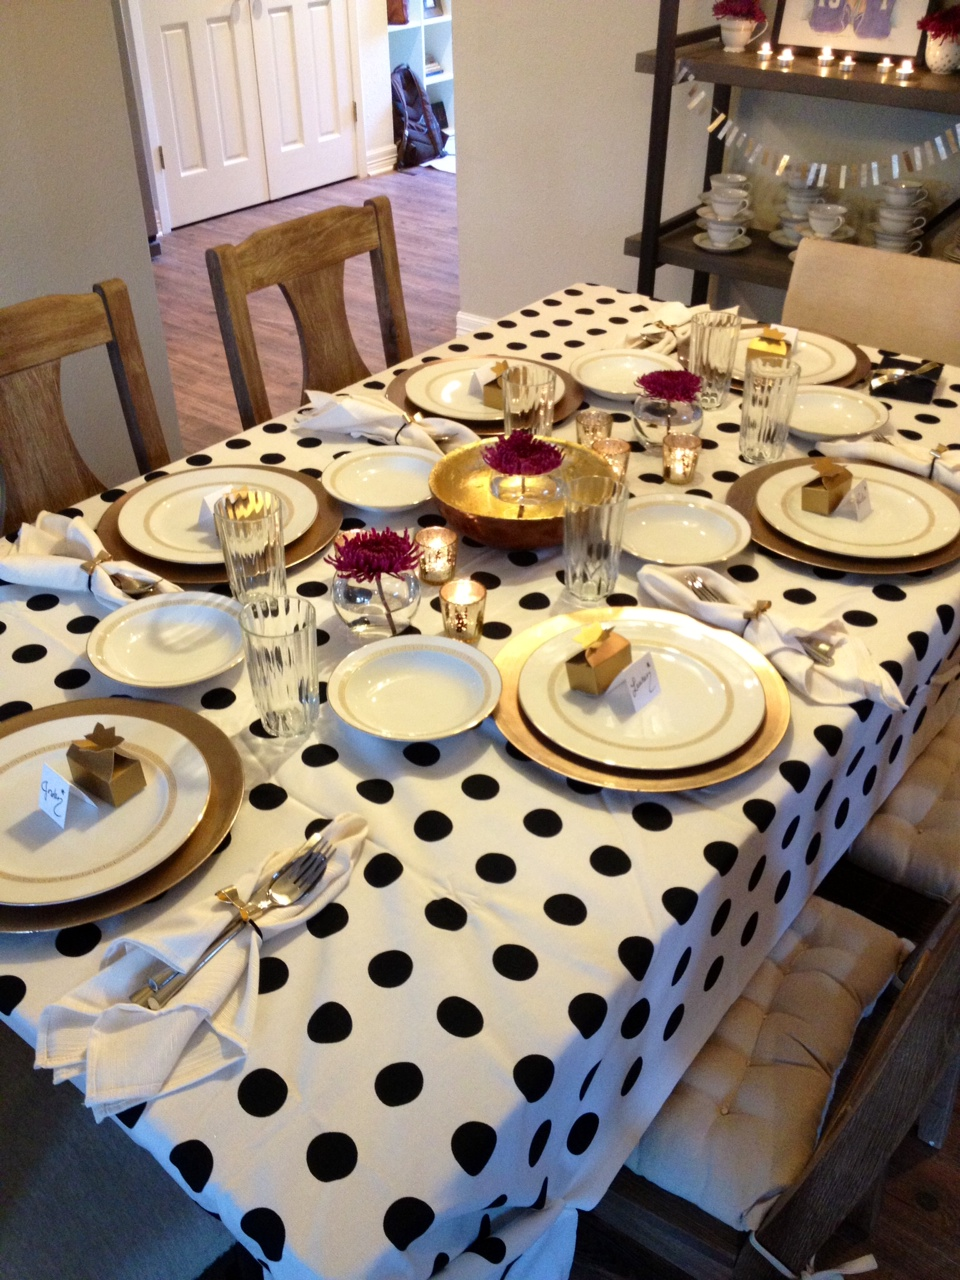 The Happy Homebodies Kate Spade Inspired Dinner Party